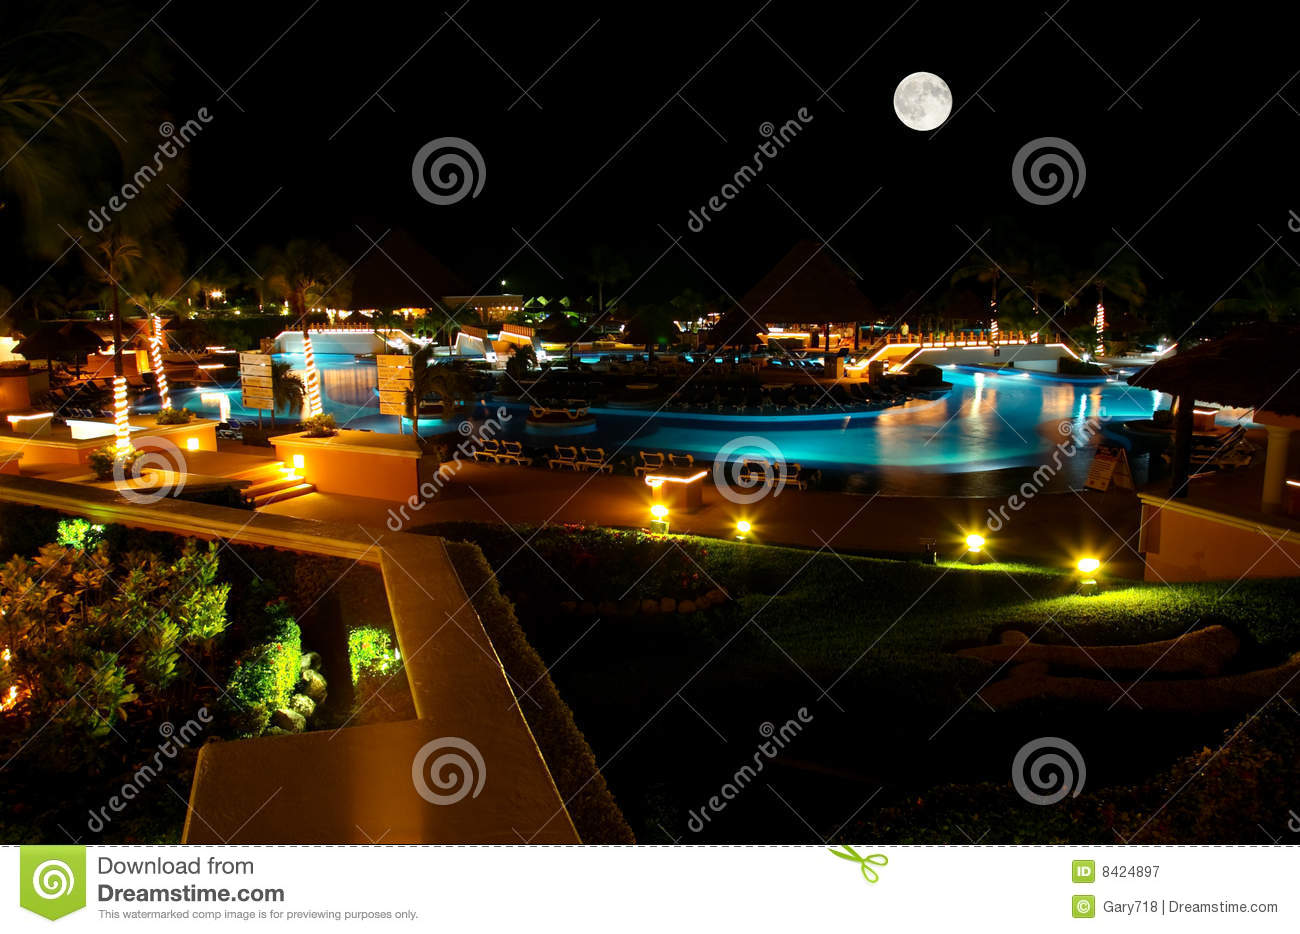 ... Free Stock Photography: A luxury all inclusive beach resort at night